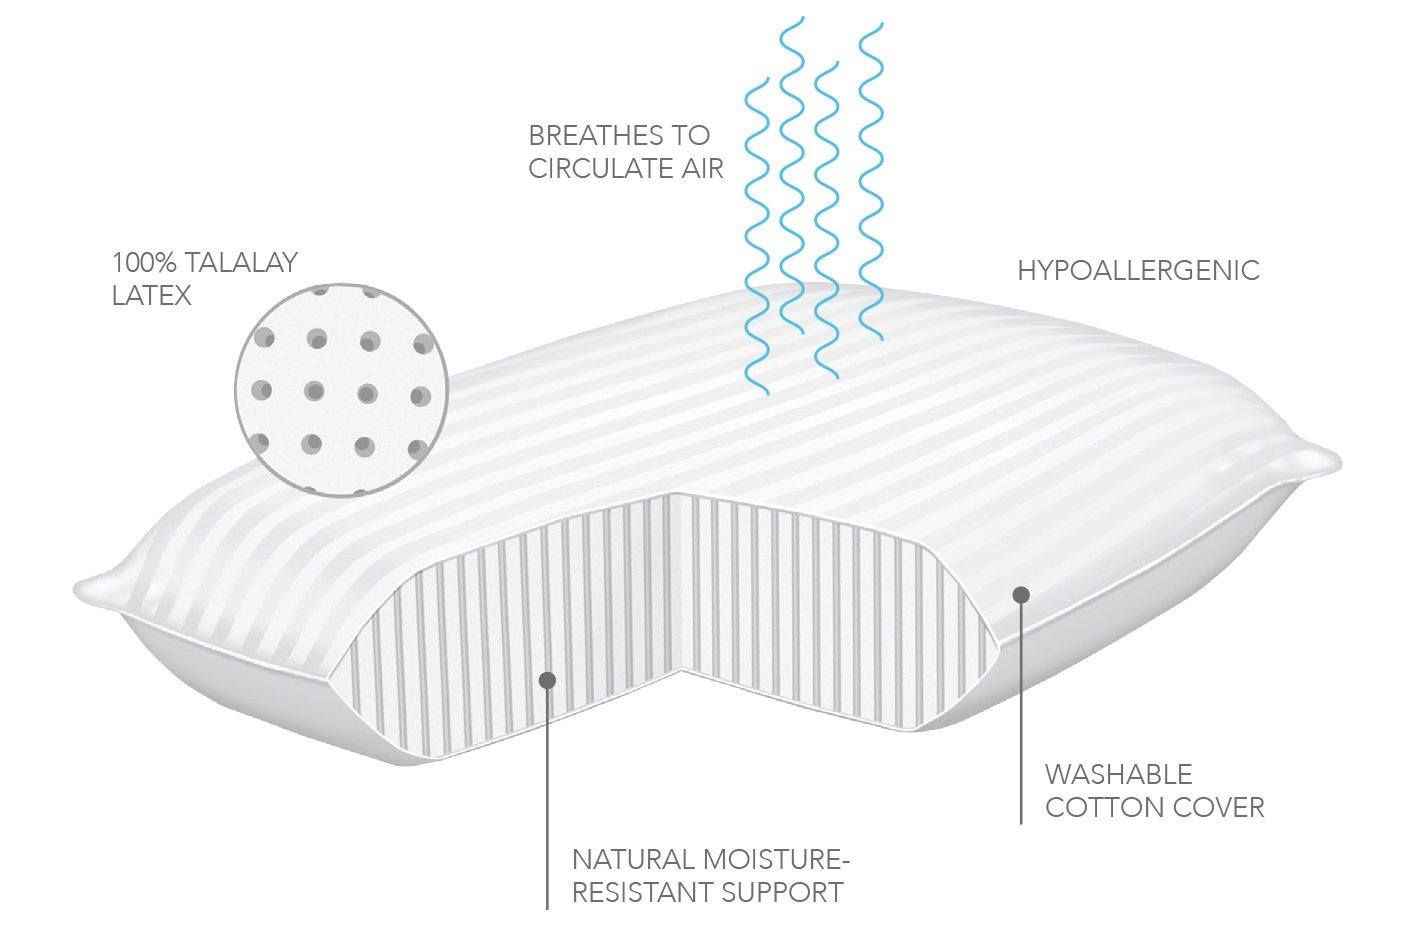 the talalay bed in for traditionally dream neoplano a pillow provides natural stress ideal cushion companion product by anti pleasant latex resistant cm and revitalising shaped filled mite bacterial hypoallergenic structure nights its foam is cotton breathable